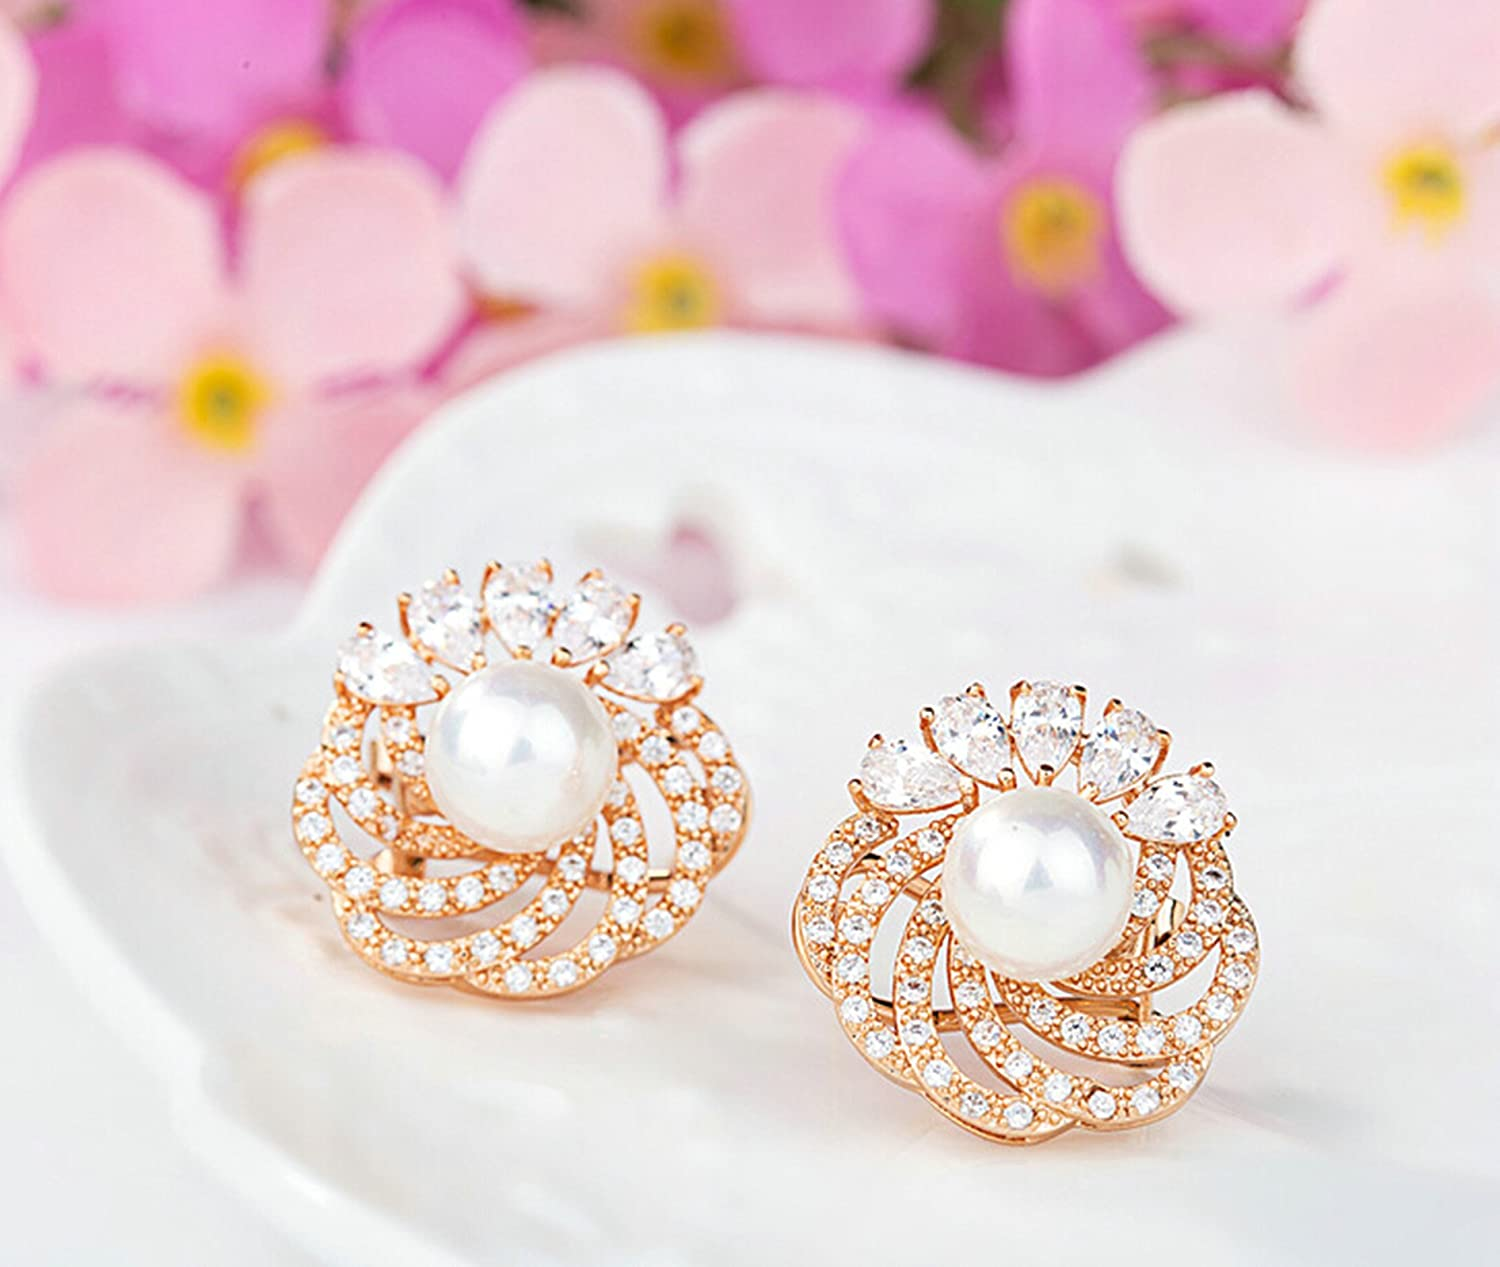 Gnzoe Jewelry Women Rose Gold Plated Stud Earring White Cubic Zirconia Hollow Design Round Pearl 19.7x19MM